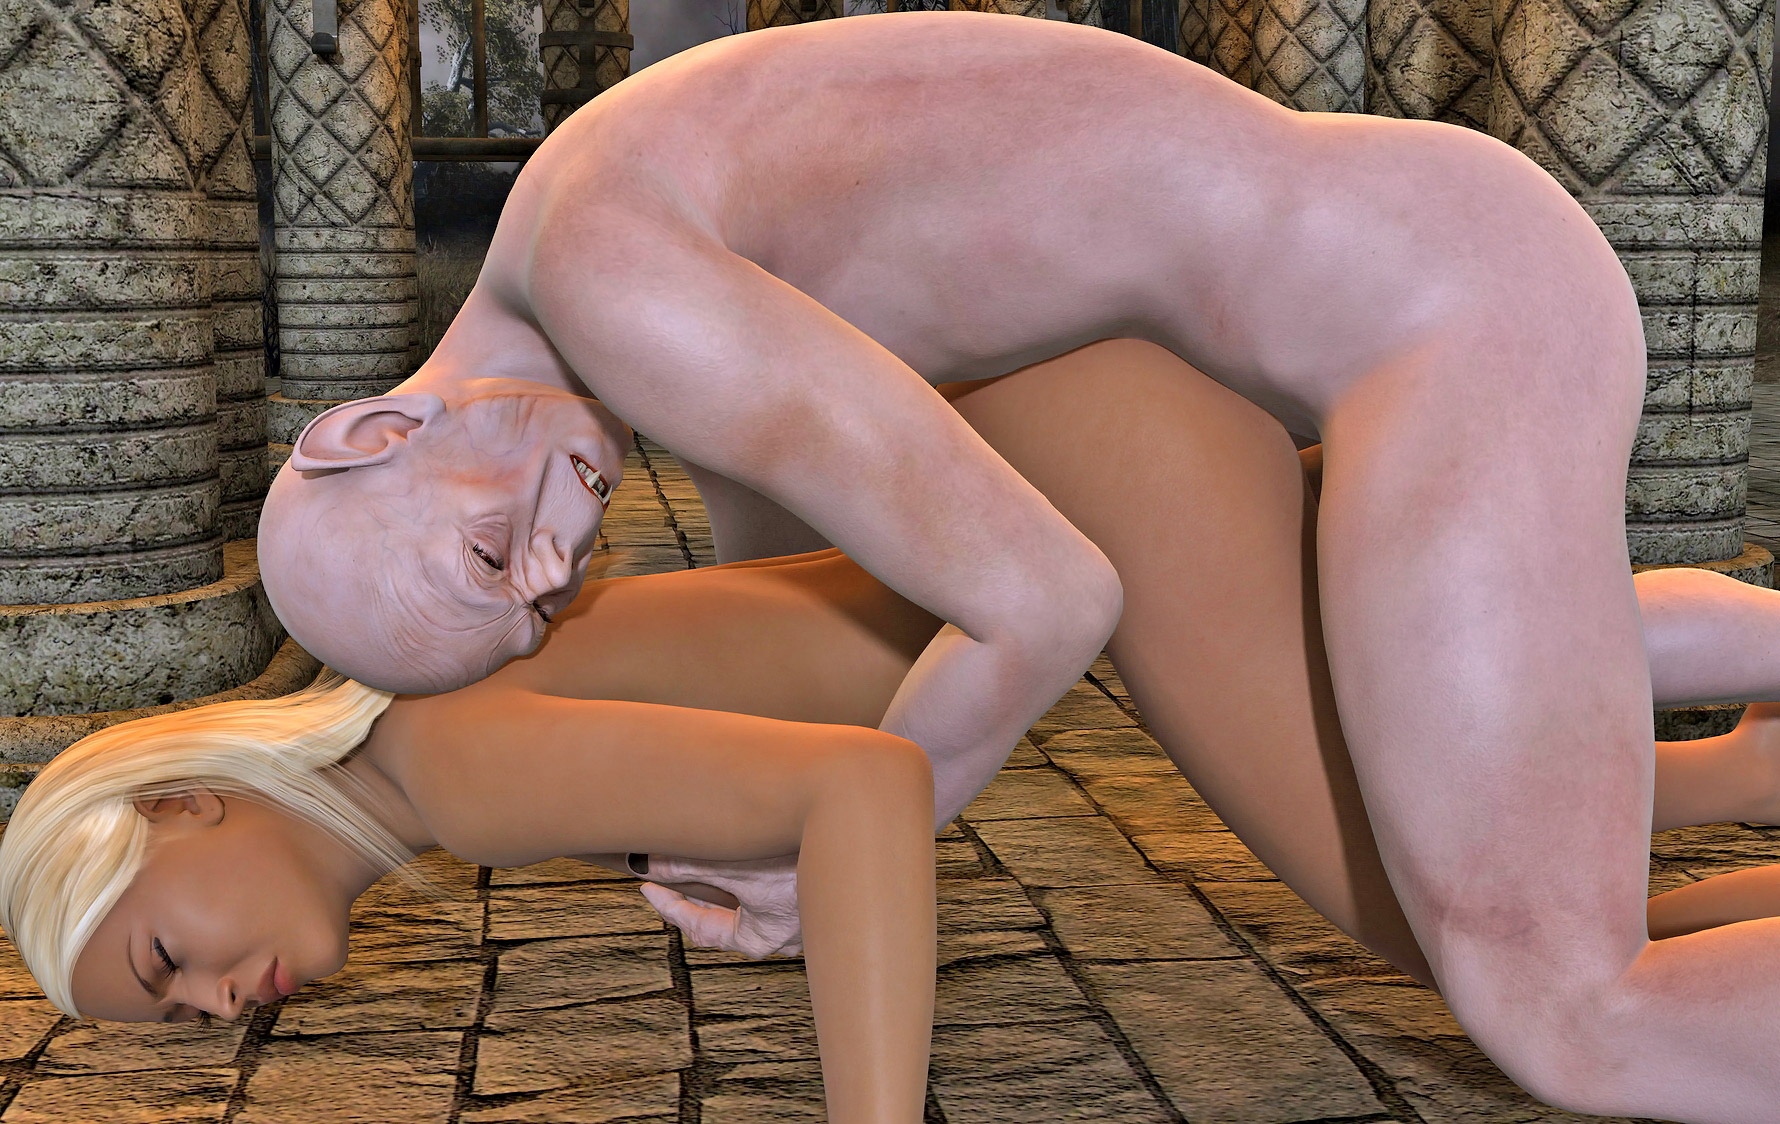 Picture 3d monster fuck woman sex sex clip